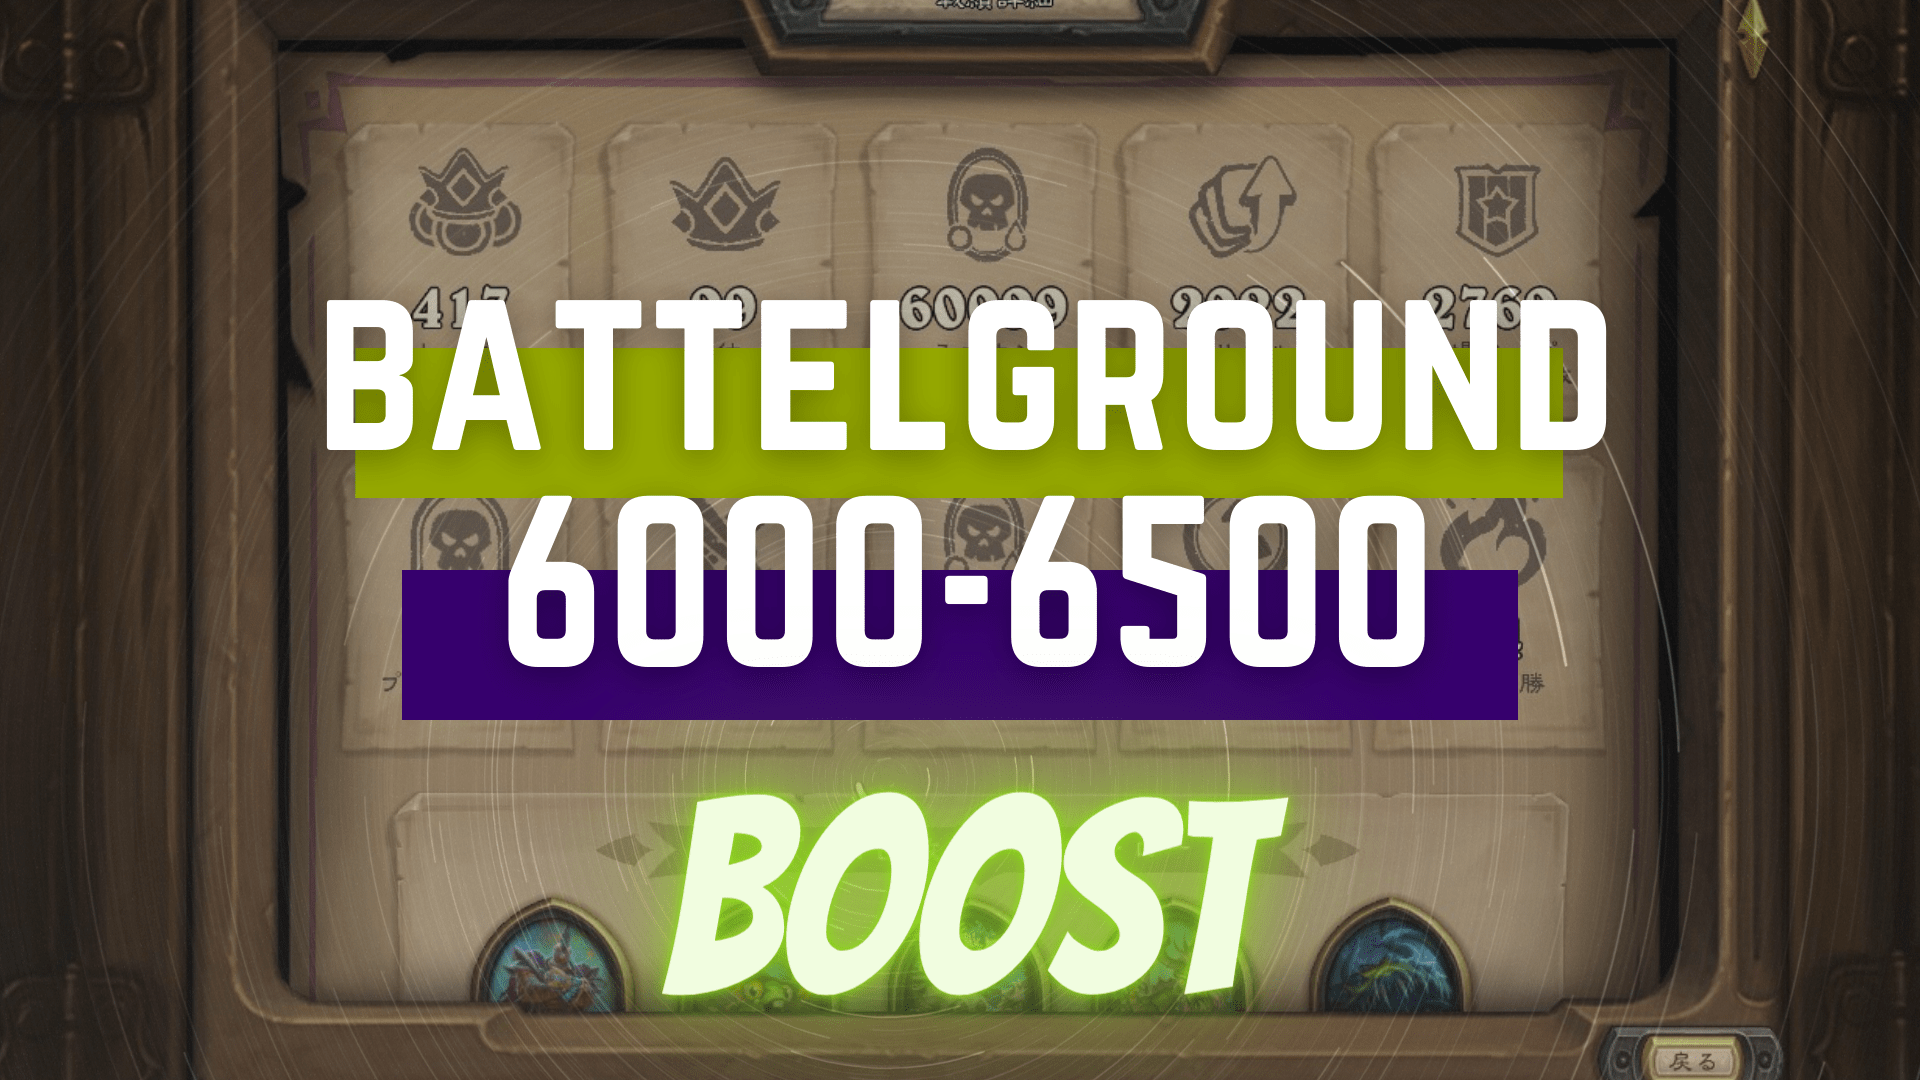 [BATTLEGROUNDS RATING] BOOST FROM 6000 TO 6500 GBD - e2p.com